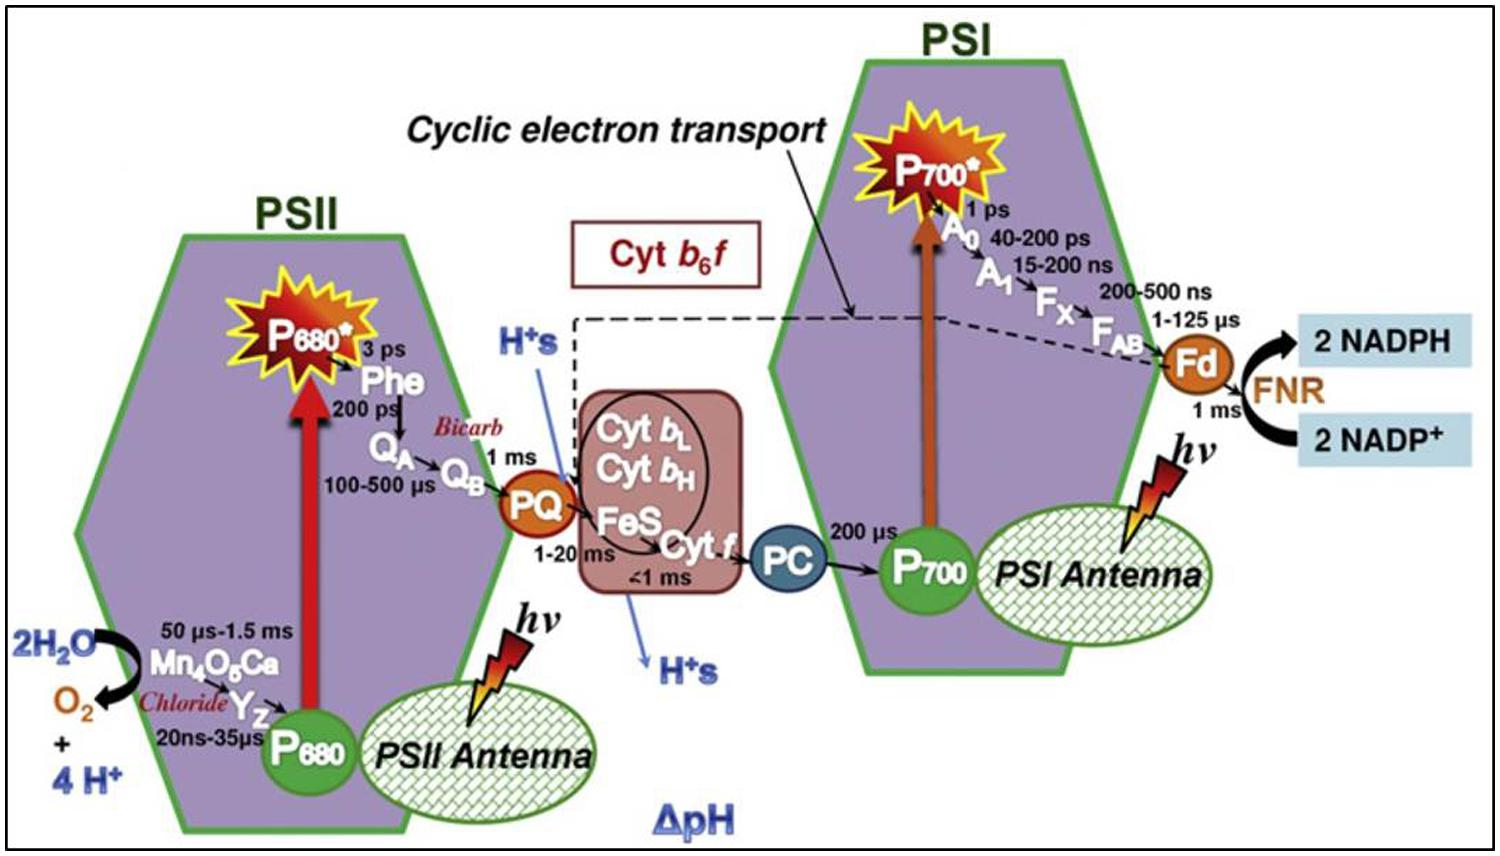 photosynthesis z scheme diagram triumph street triple r wiring frontiers recent developments in fast spectroscopy for